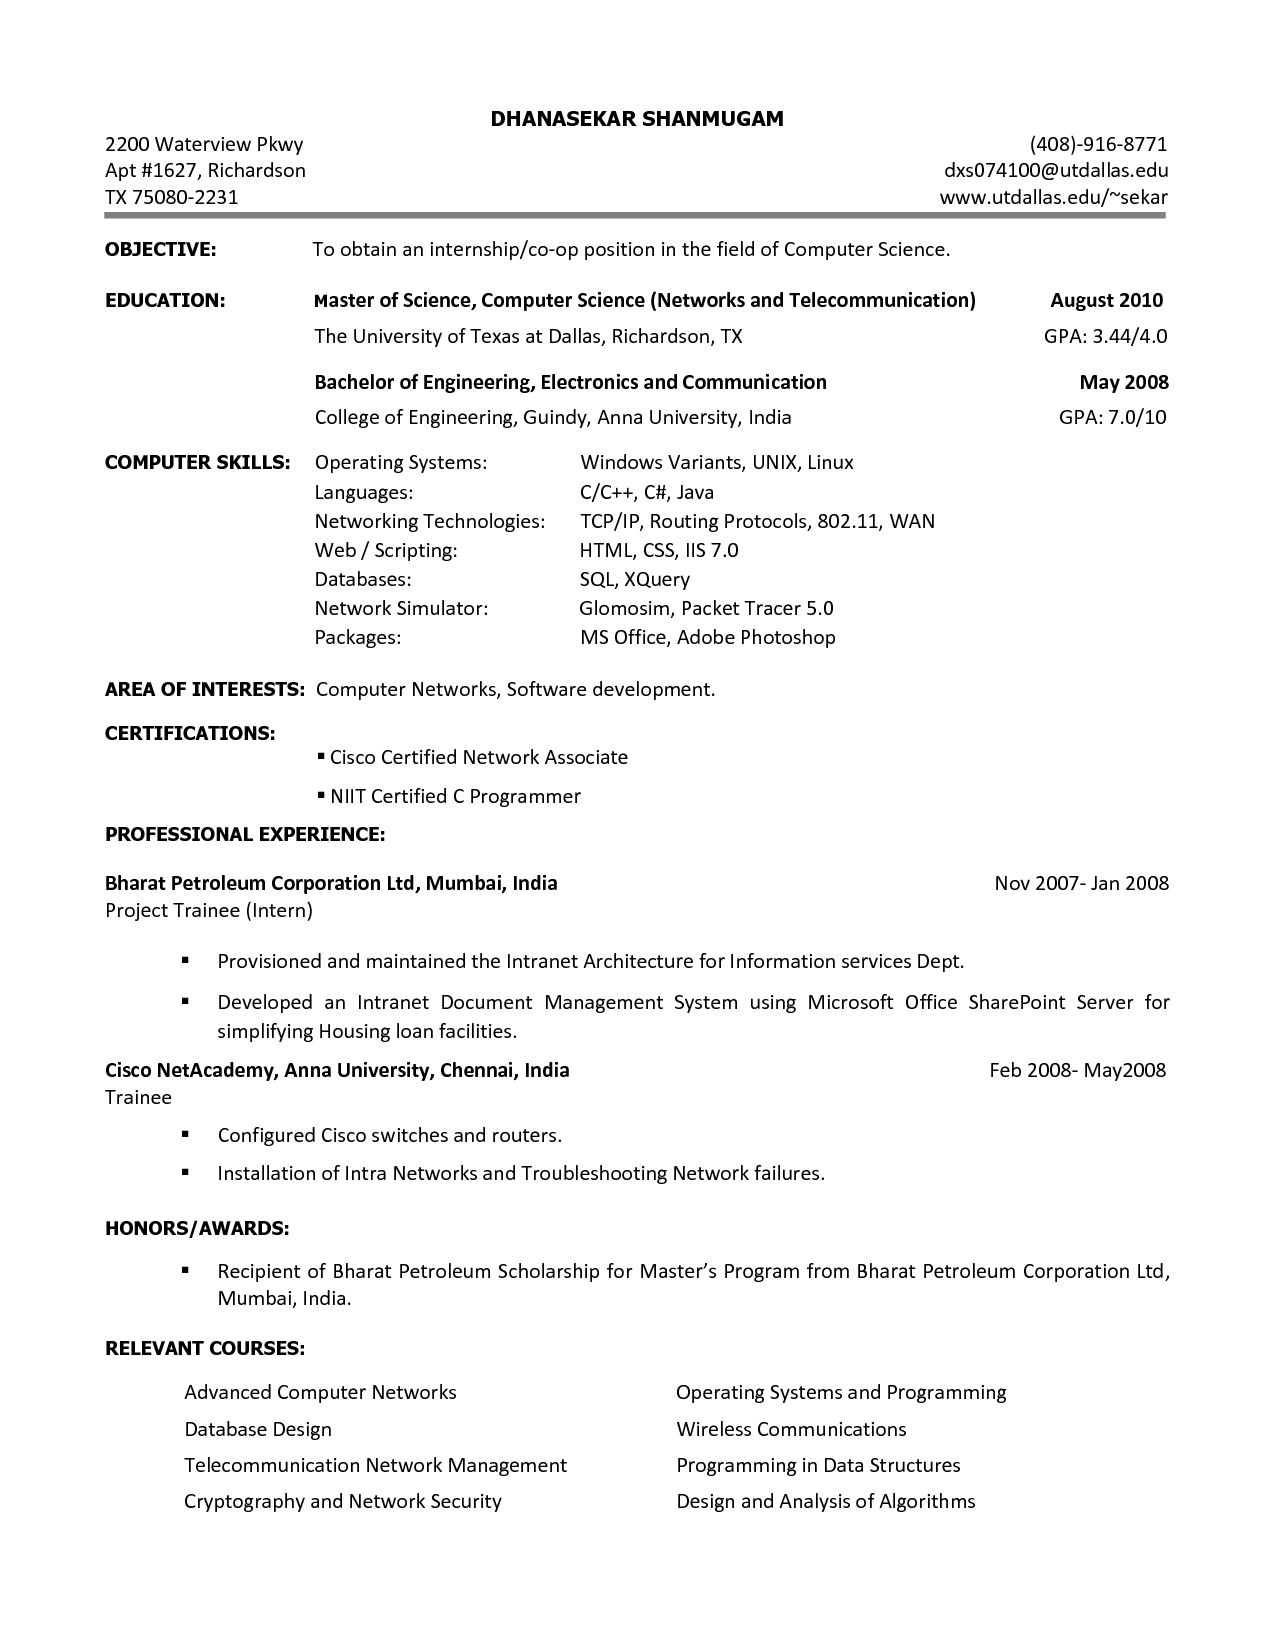 Resumes For Students Pinlirik_Pas On Your Essay  Pinterest  Food Science